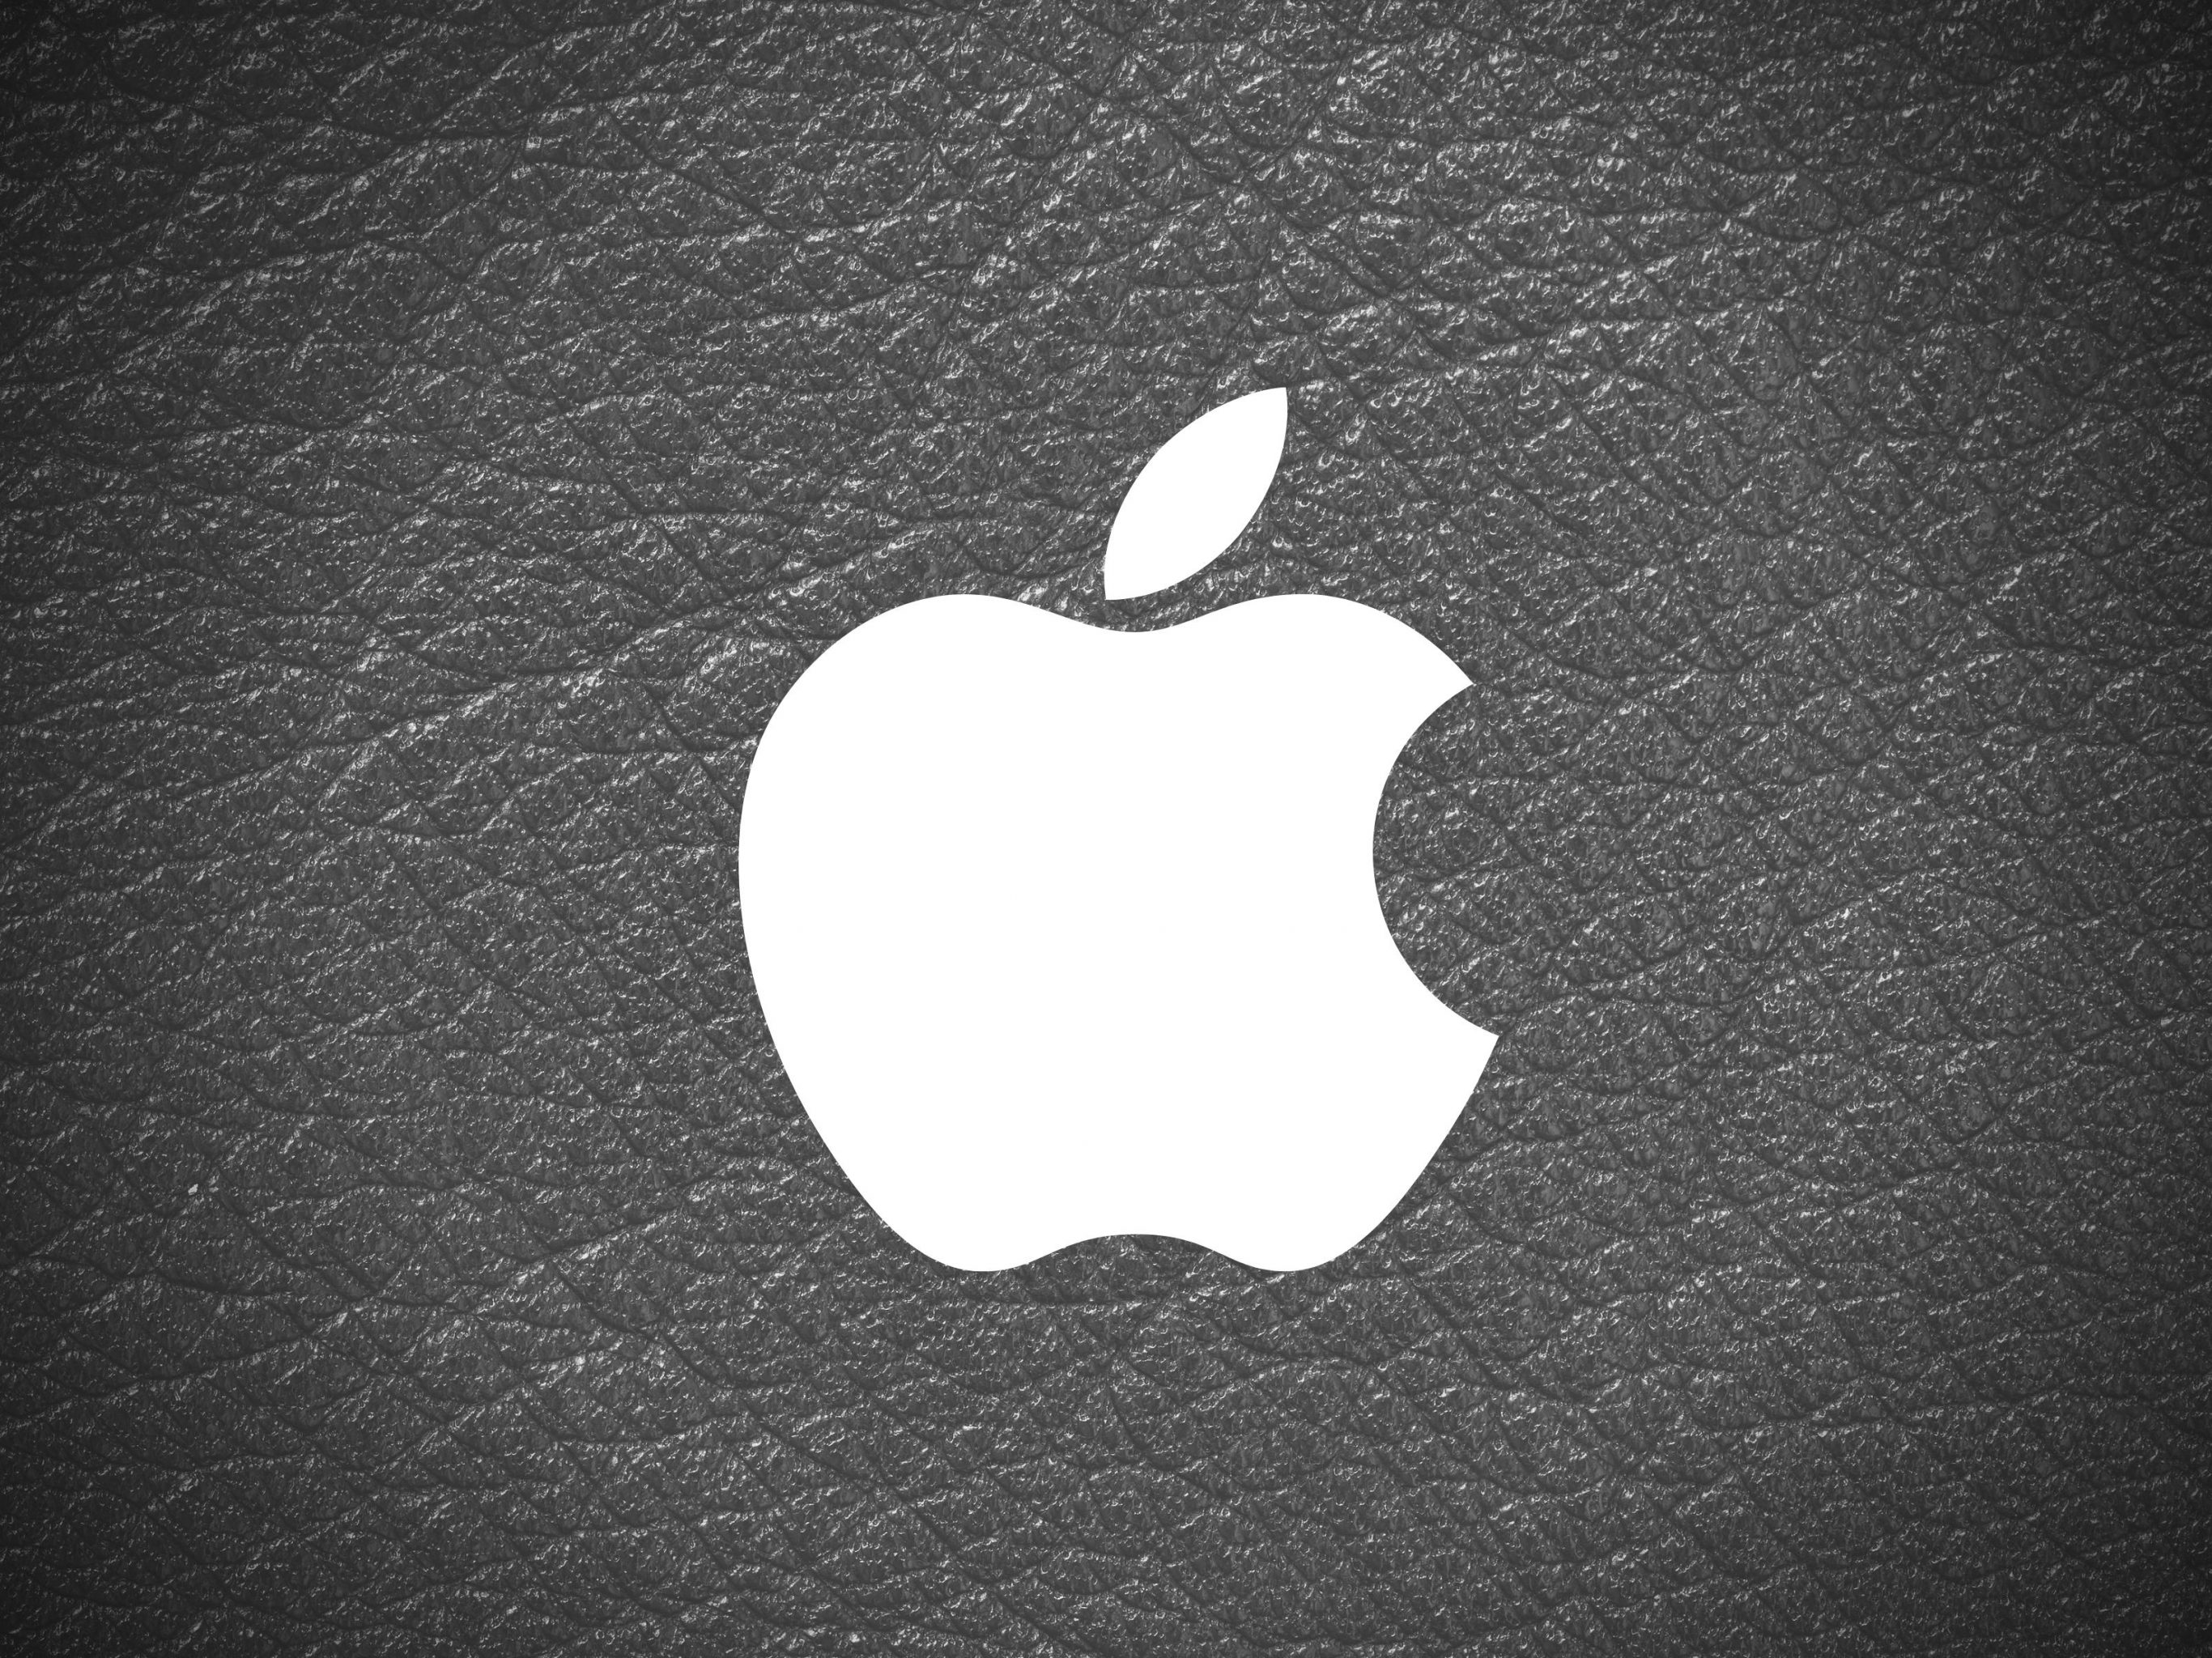 2732x2048 iPad air iPad Pro wallpapers Apple Logo Leather Black and White iPad Wallpaper 2732x2048 pixels resolution